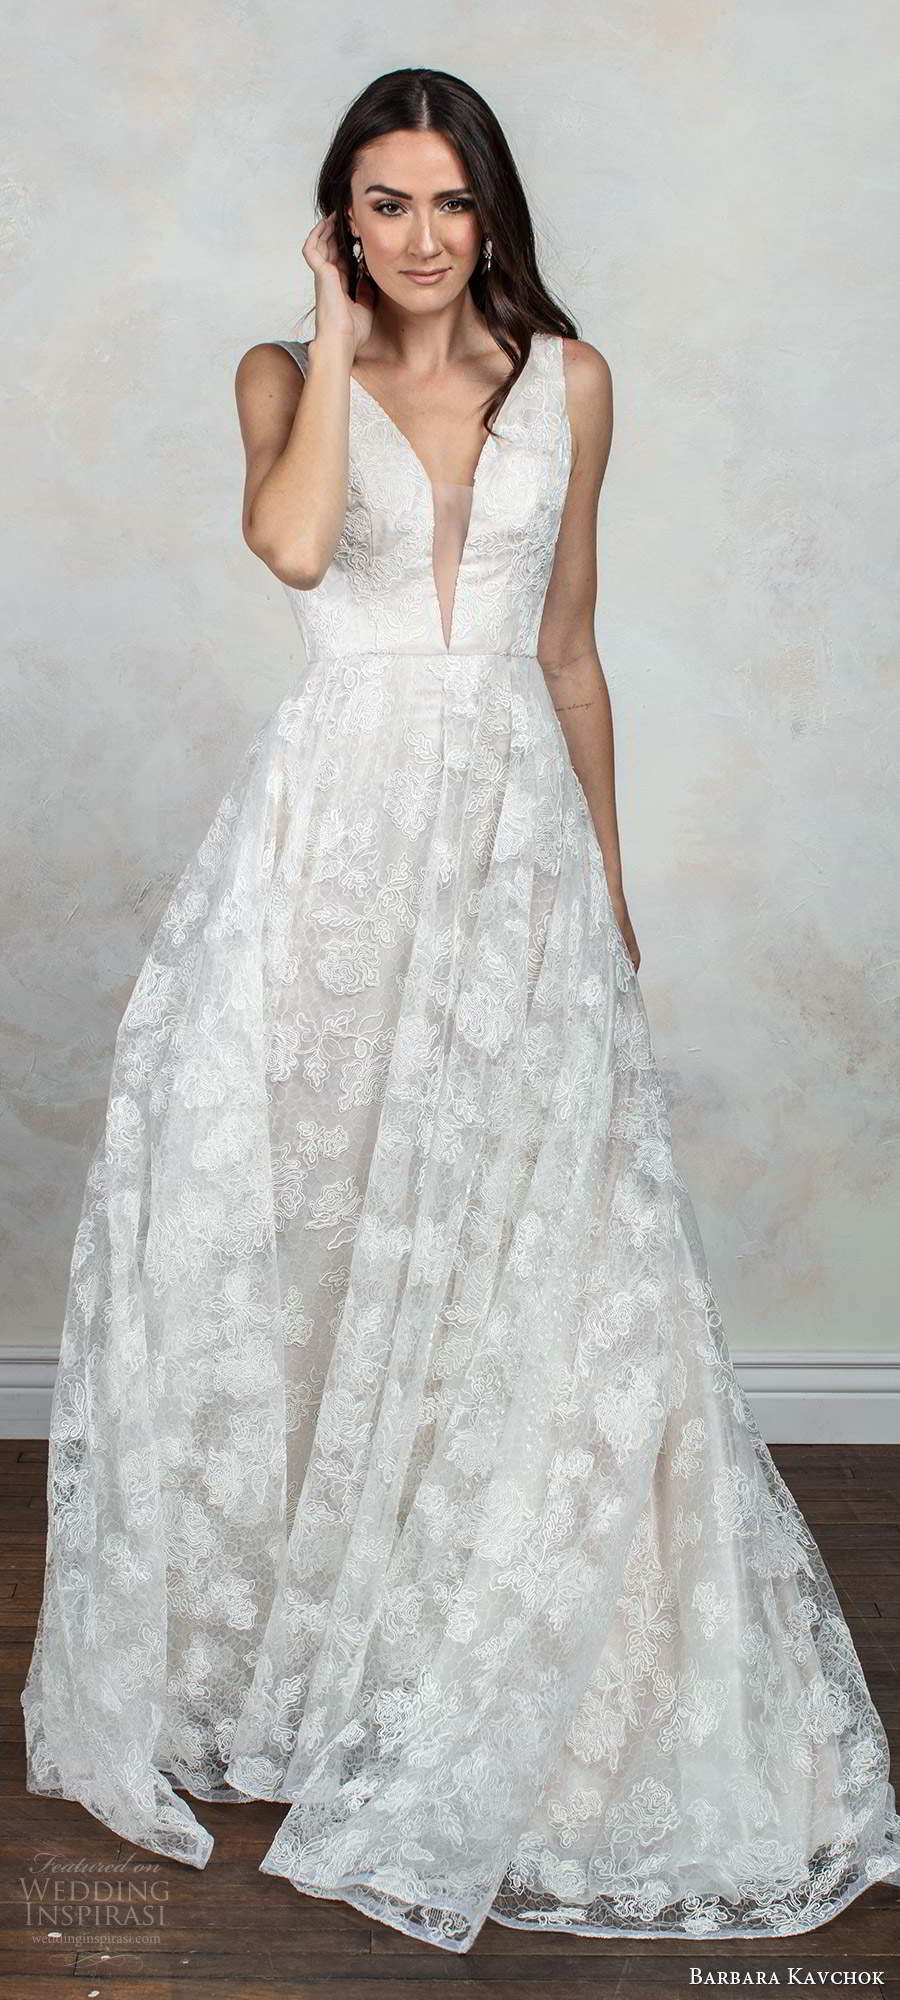 barbara kavchok fall 2020 bridal sleeveless thick straps plunging v neckline fully embellished lace a line ball gown wedding dress low back chapel train  (4) mv